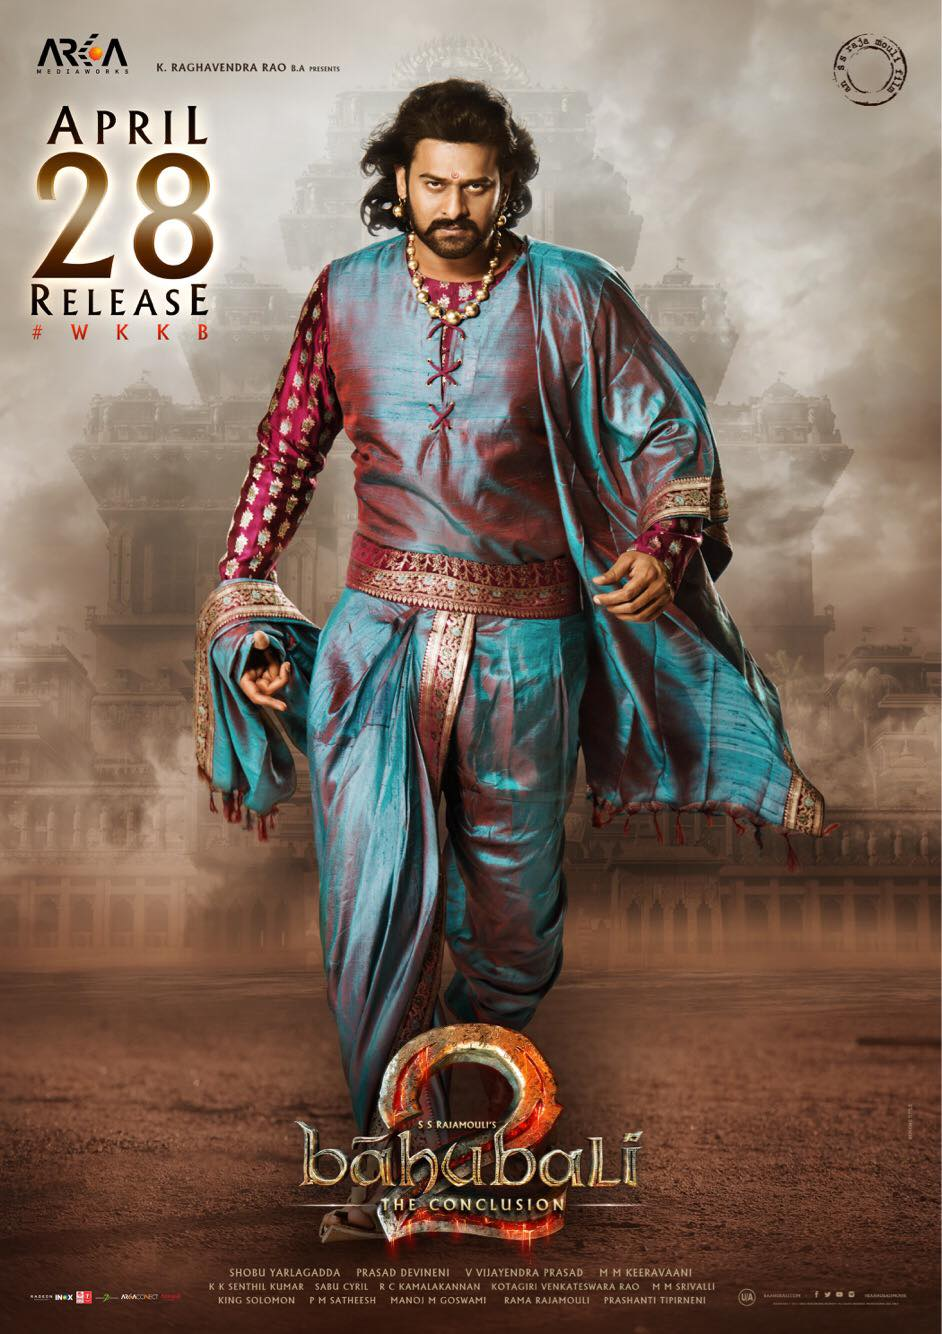 image - 59-prabhas baahubali movie wallpapers ultra hd